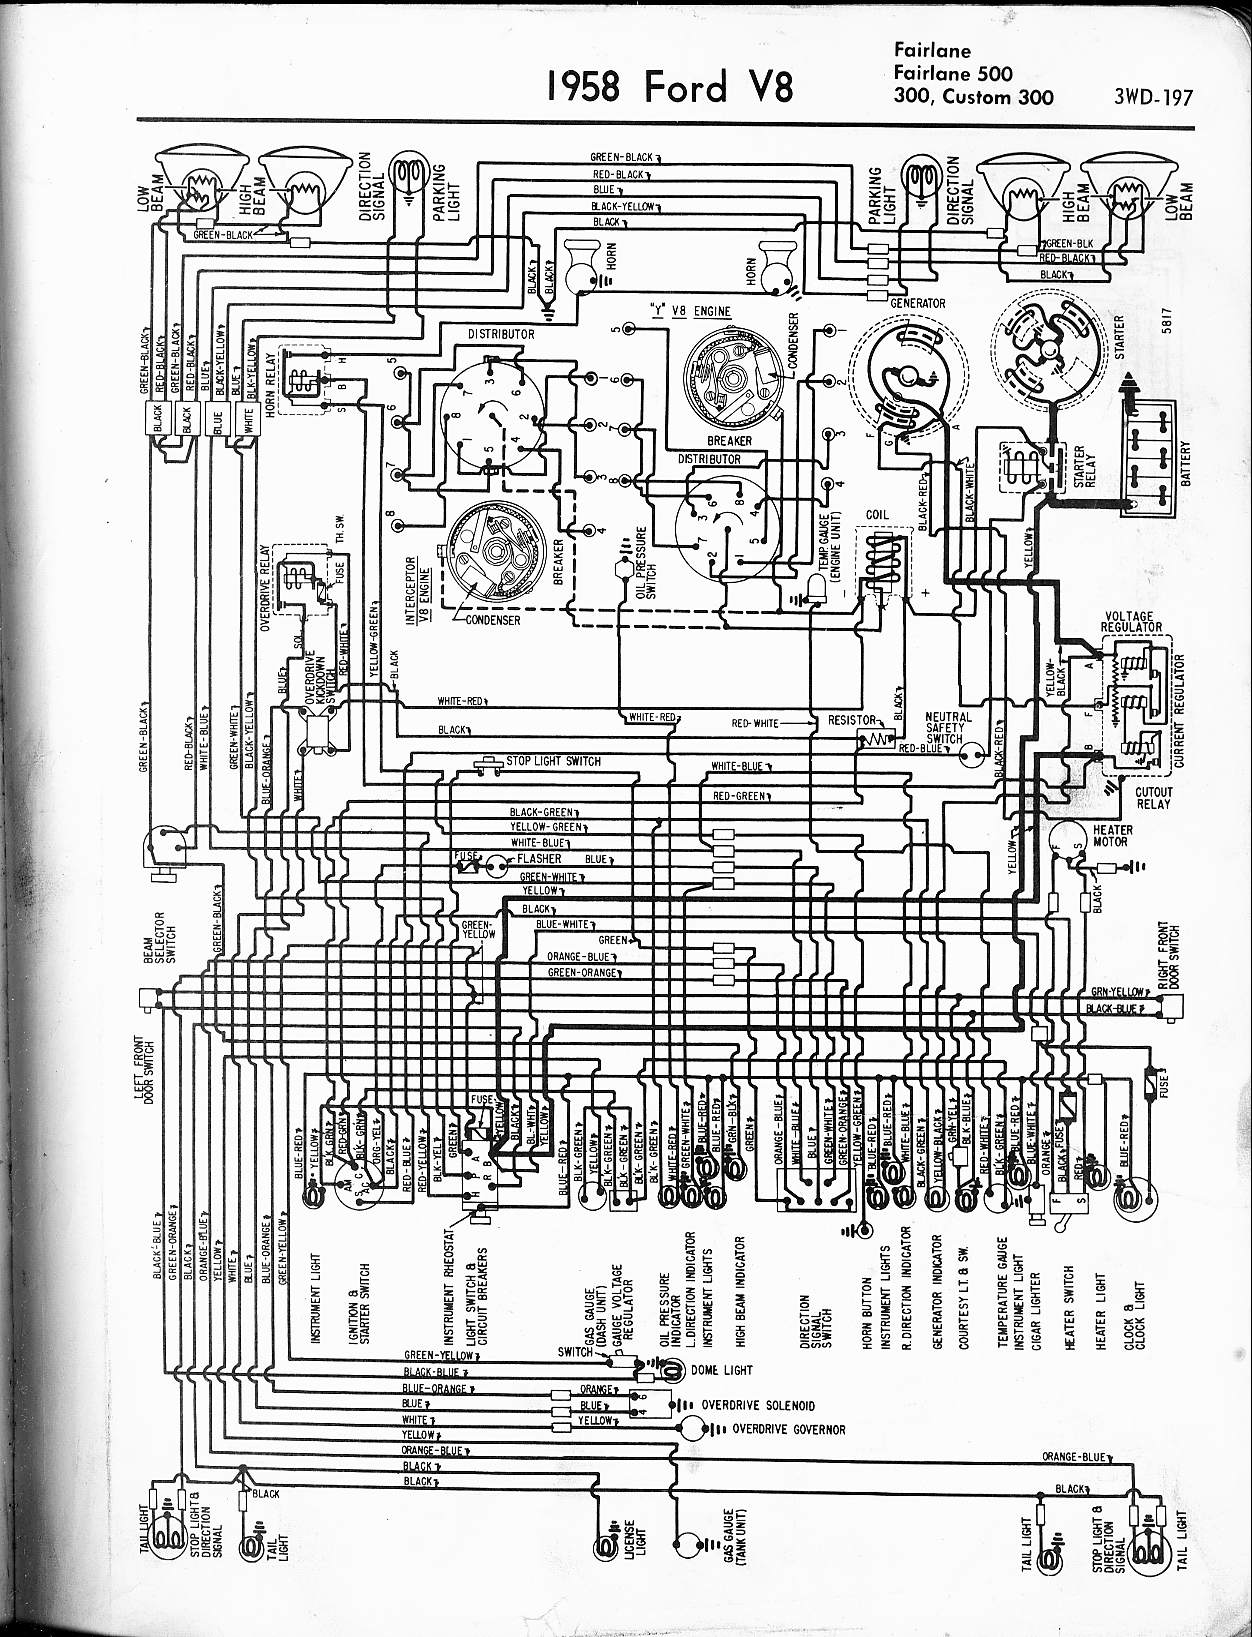 MWire5765 197 57 65 ford wiring diagrams 1966 ford fairlane wiring diagram at mifinder.co